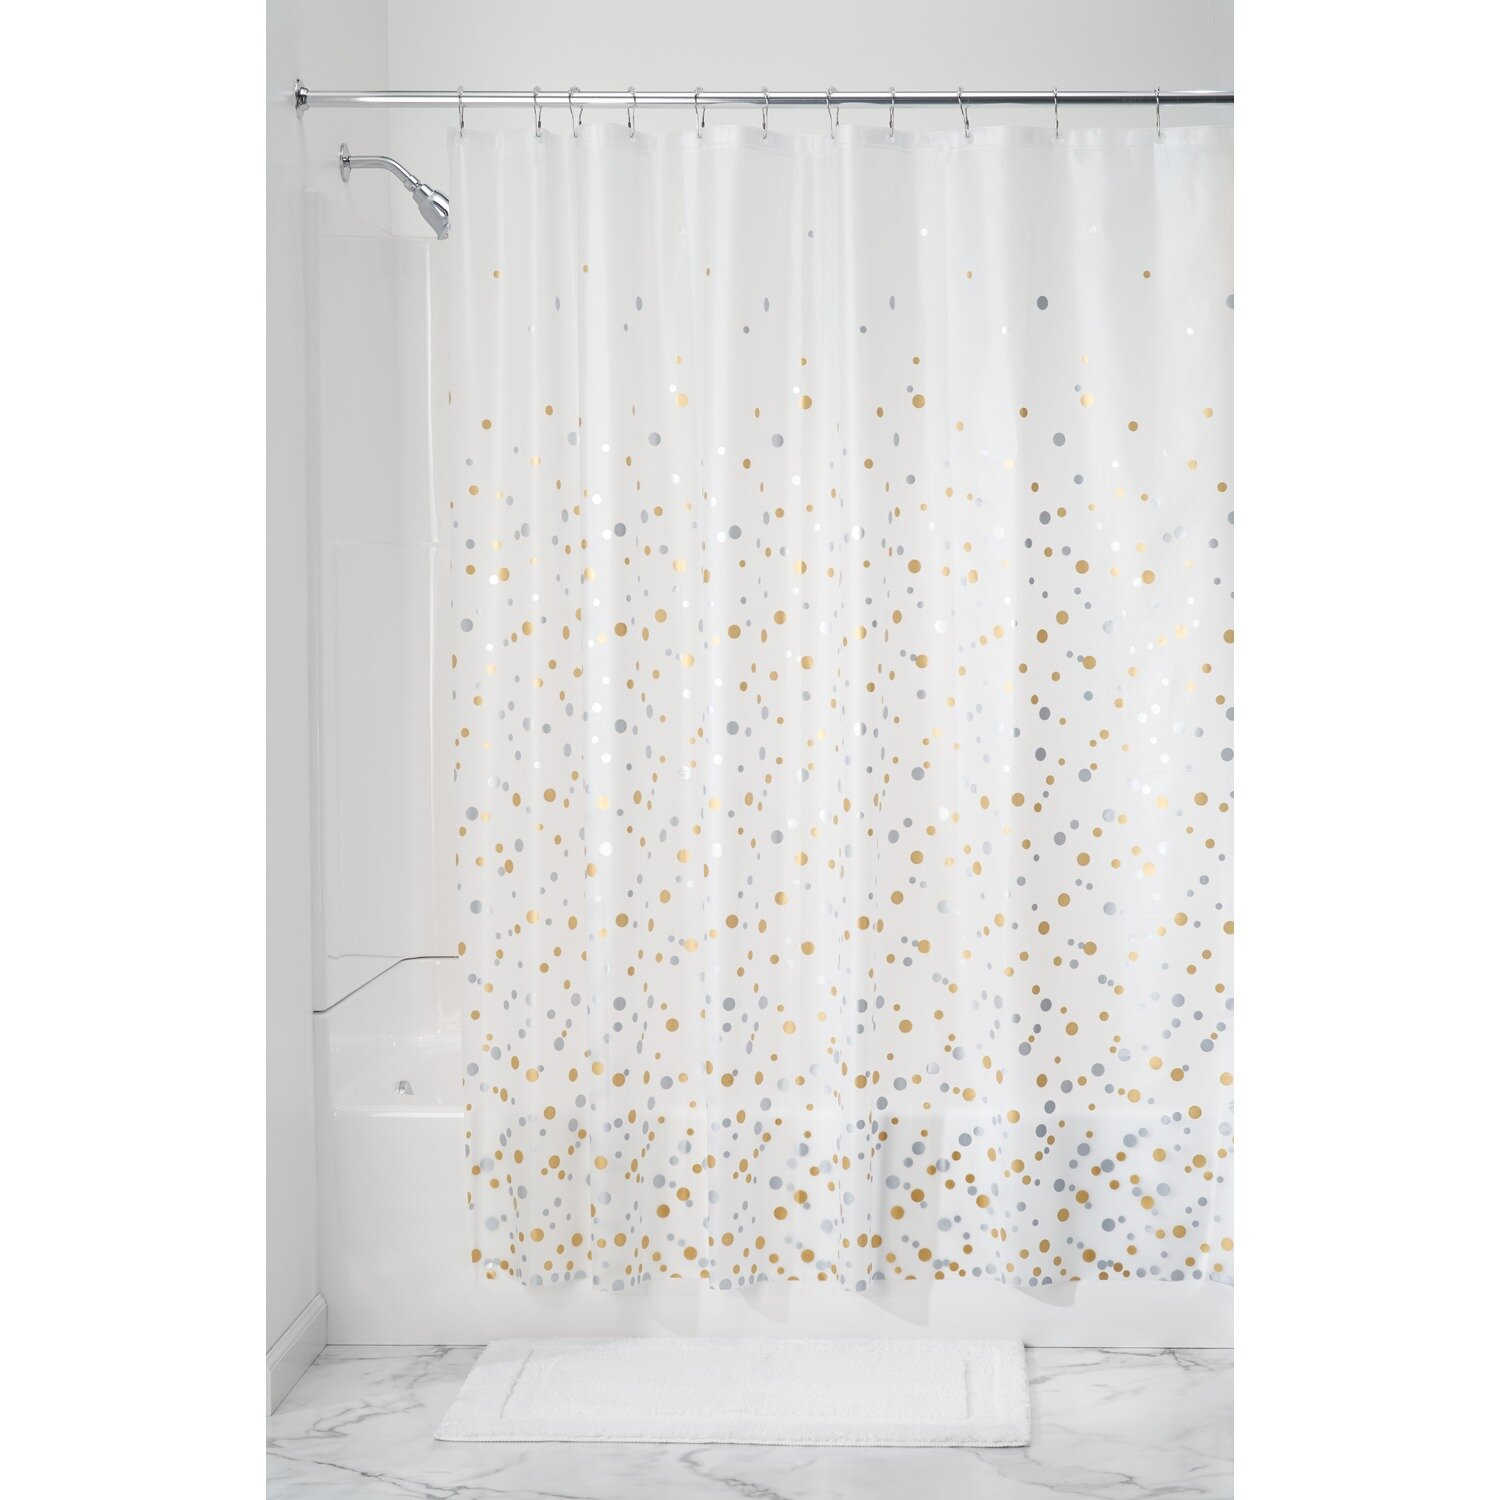 hem shower click with expand liner to p liners x weighted curtain fabric